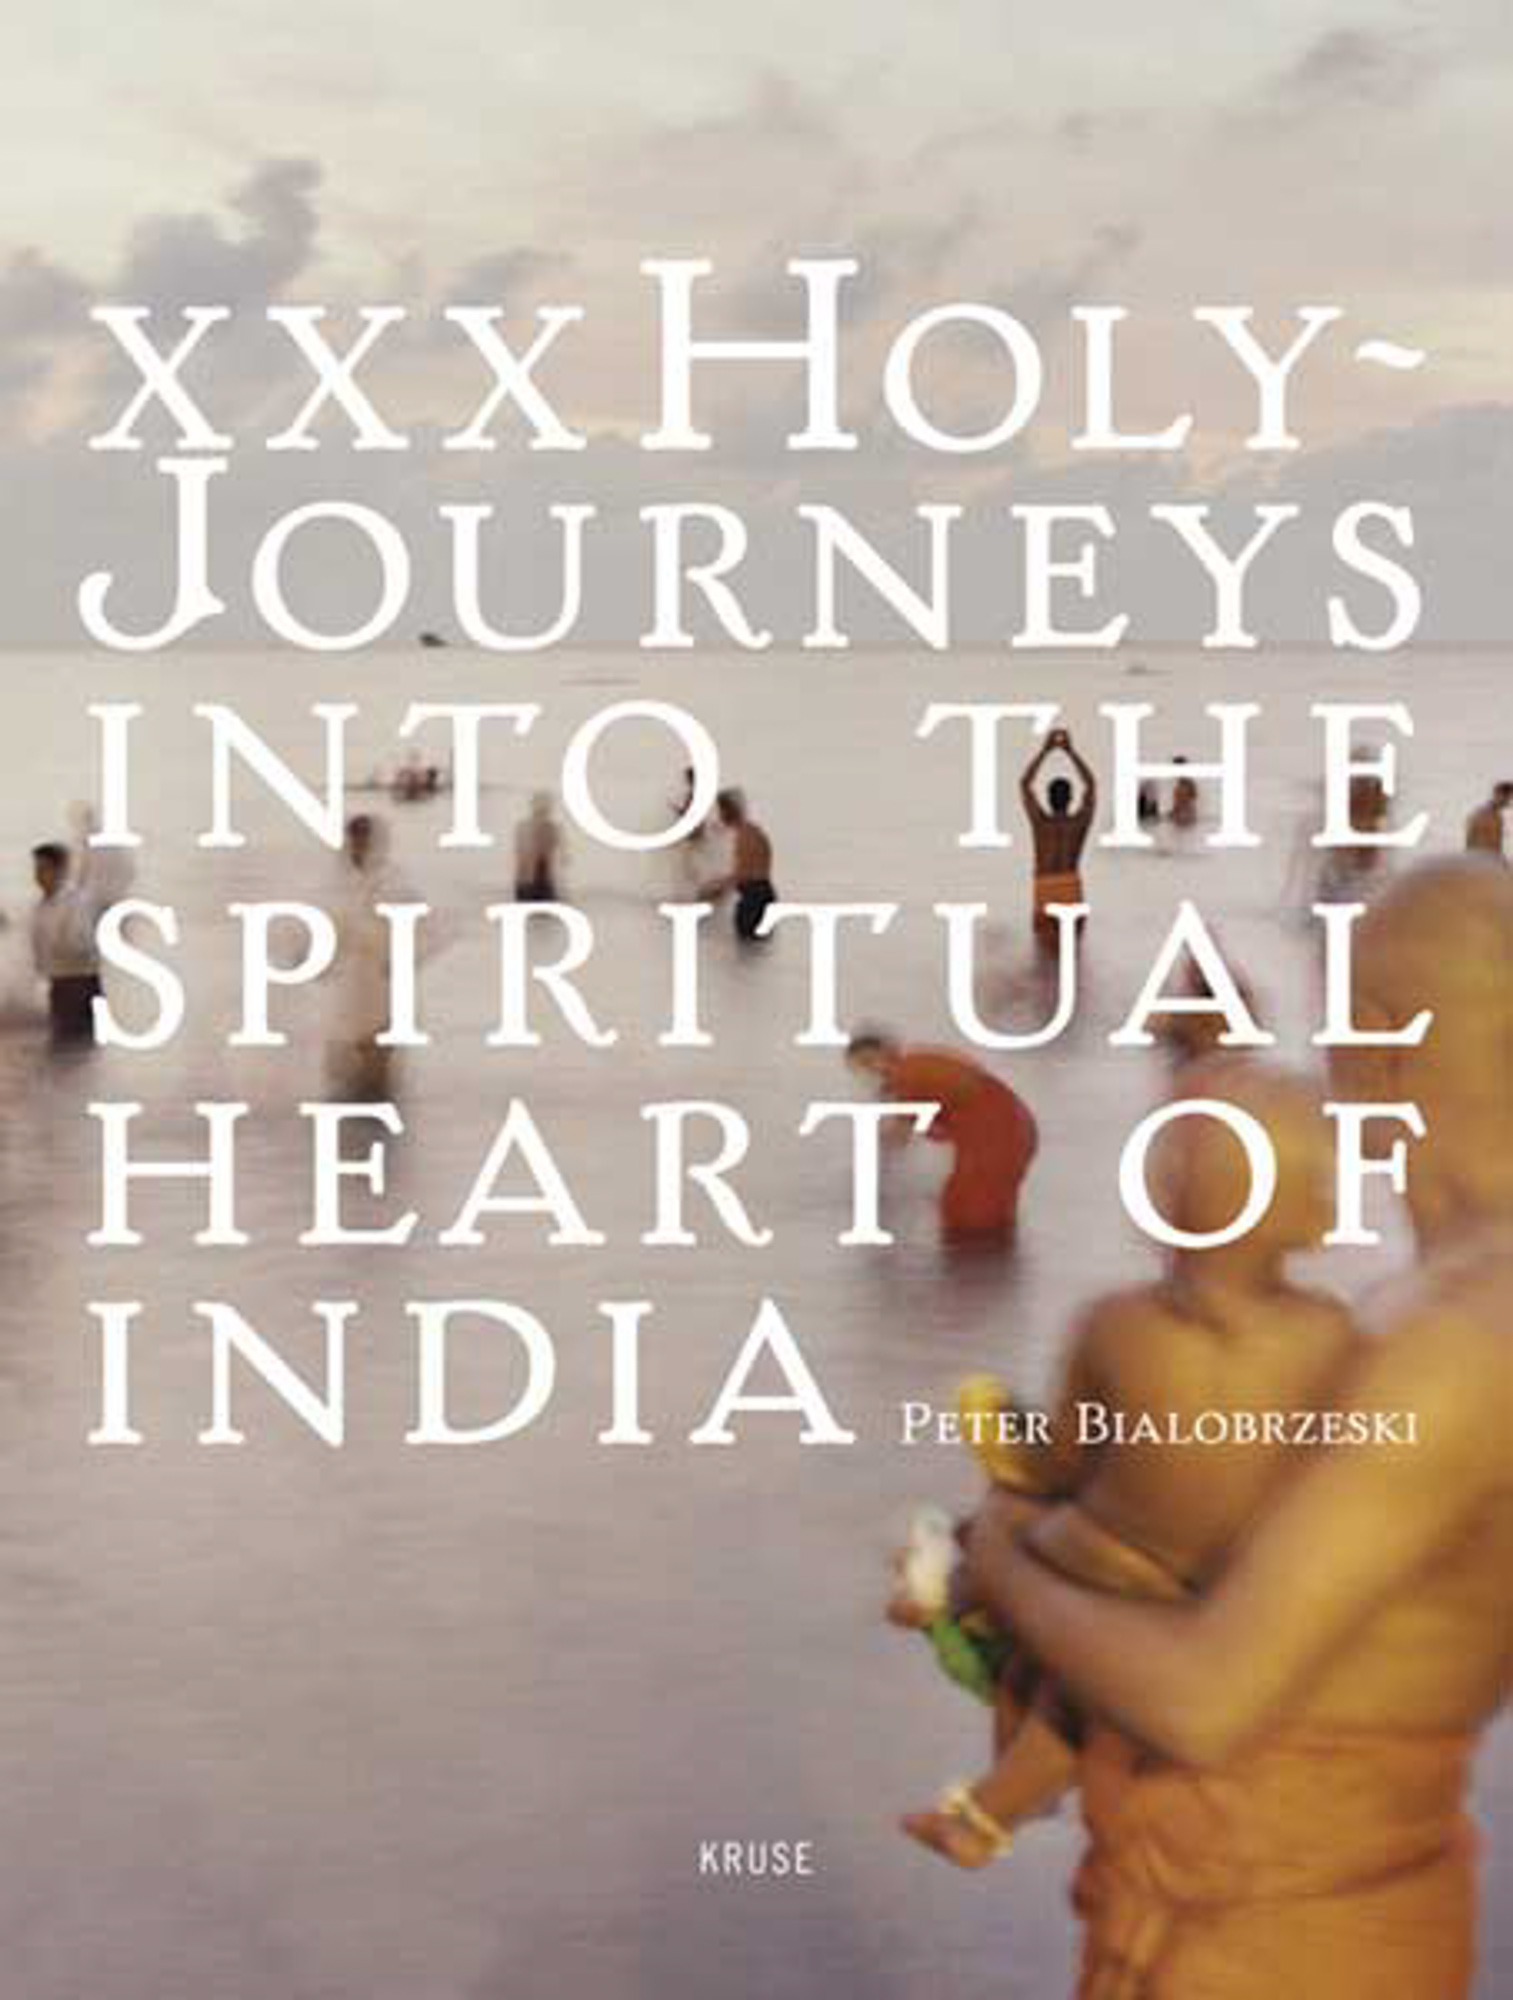 - xxxHoly-Journeys into the Spiritual Heart of India is my first monographic book, published in the year 2000